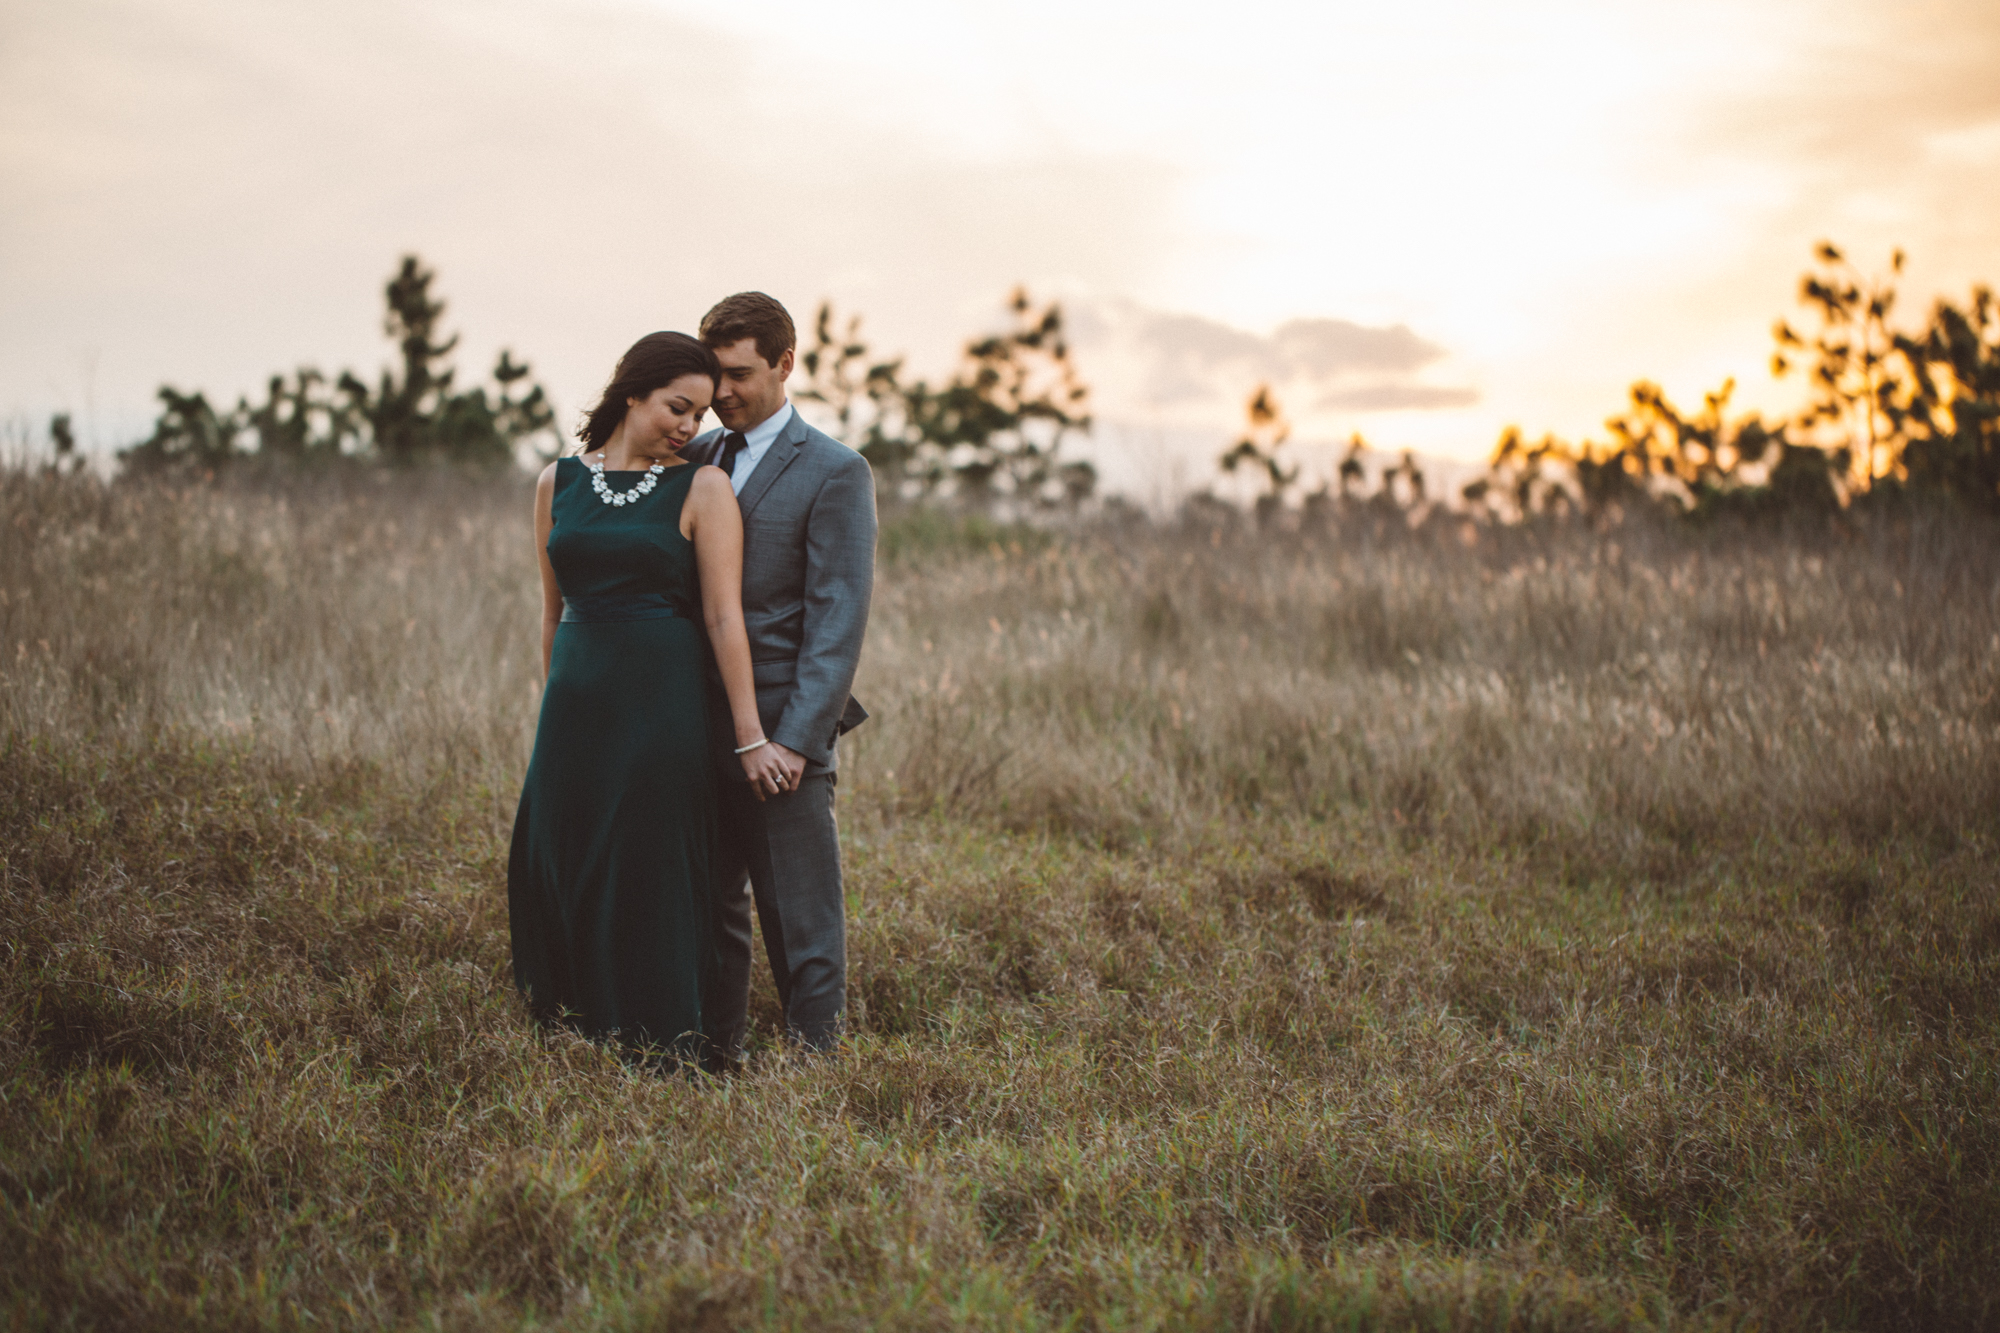 Orlando Engagement Photographer-79.jpg